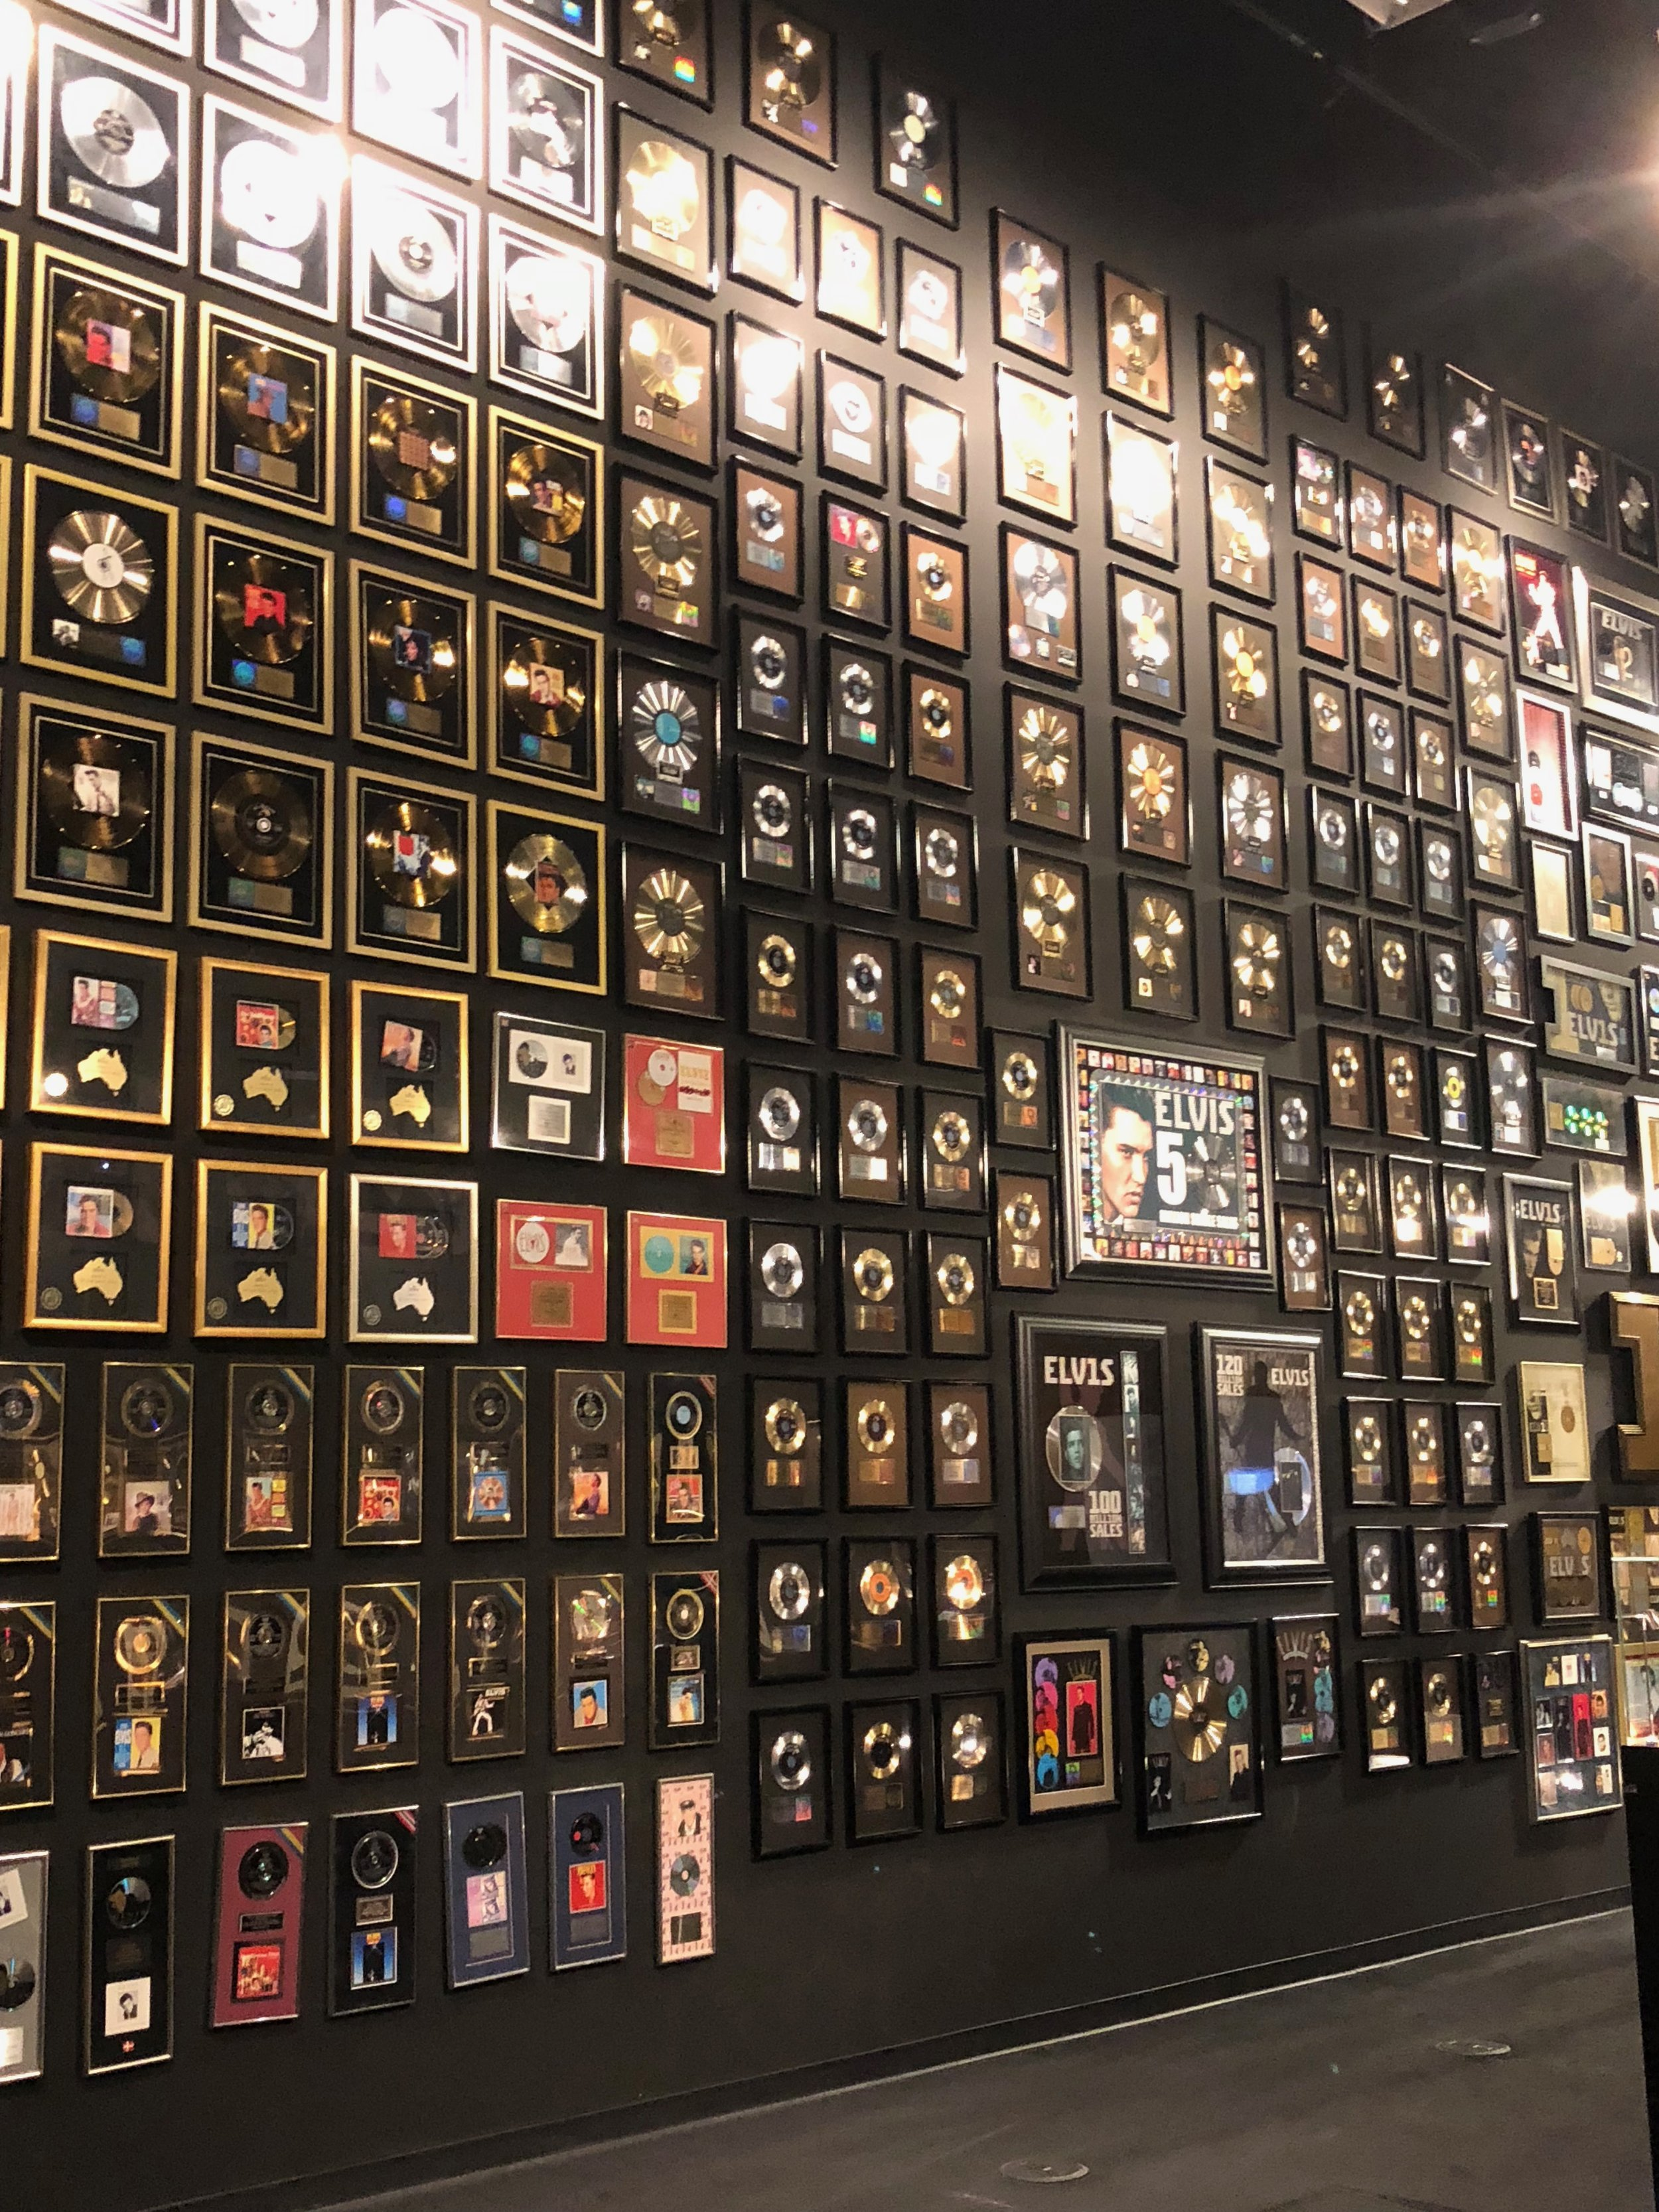 Floor to ceiling record wall at Graceland museum